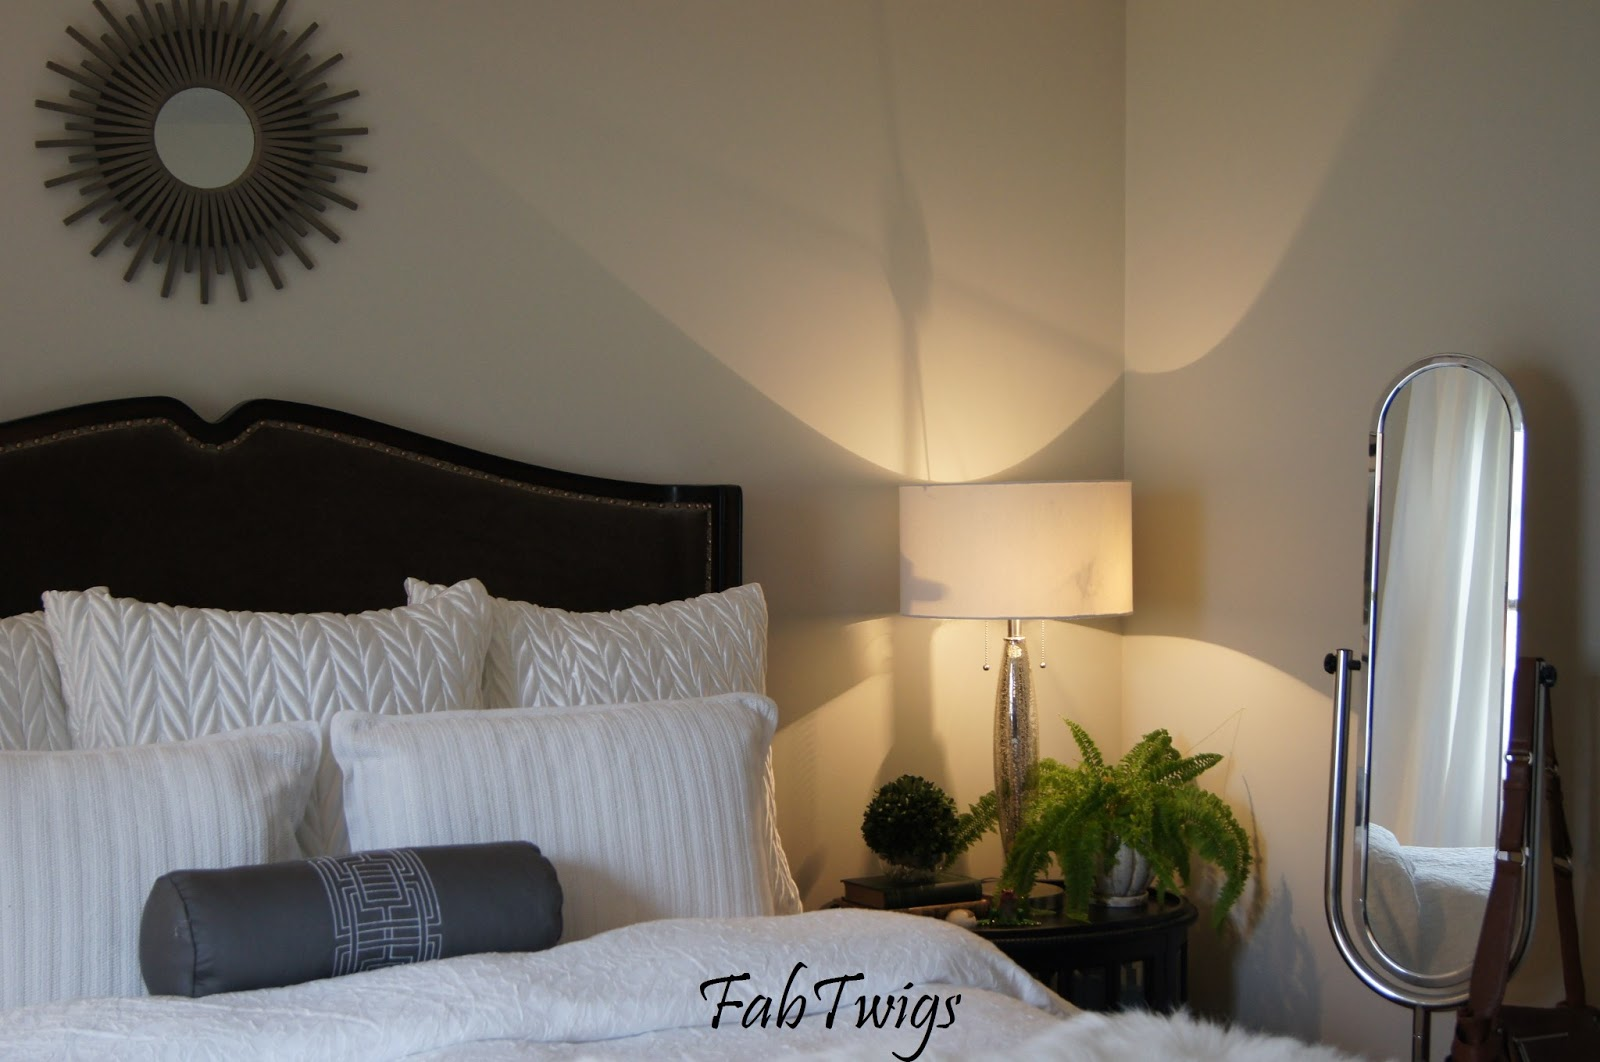 Fabtwigs It Has Been A While Gray Master Bedroom Is